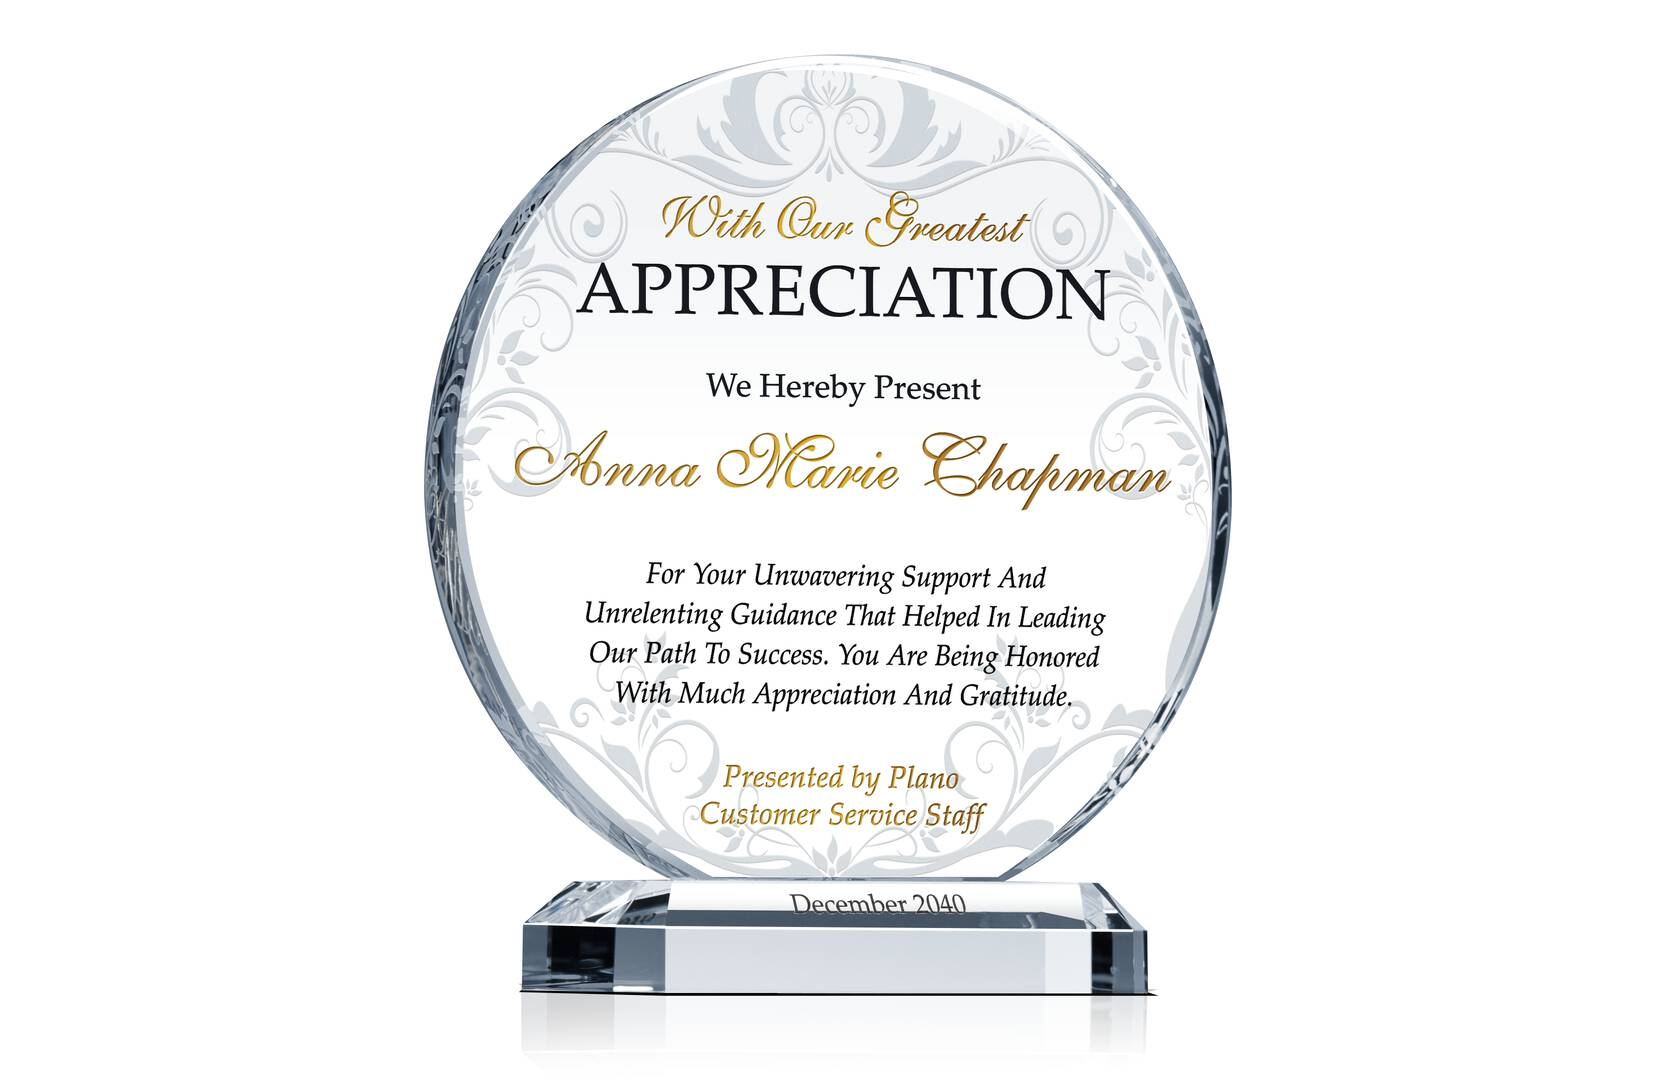 Circle Employee Appreciation Award Plaque